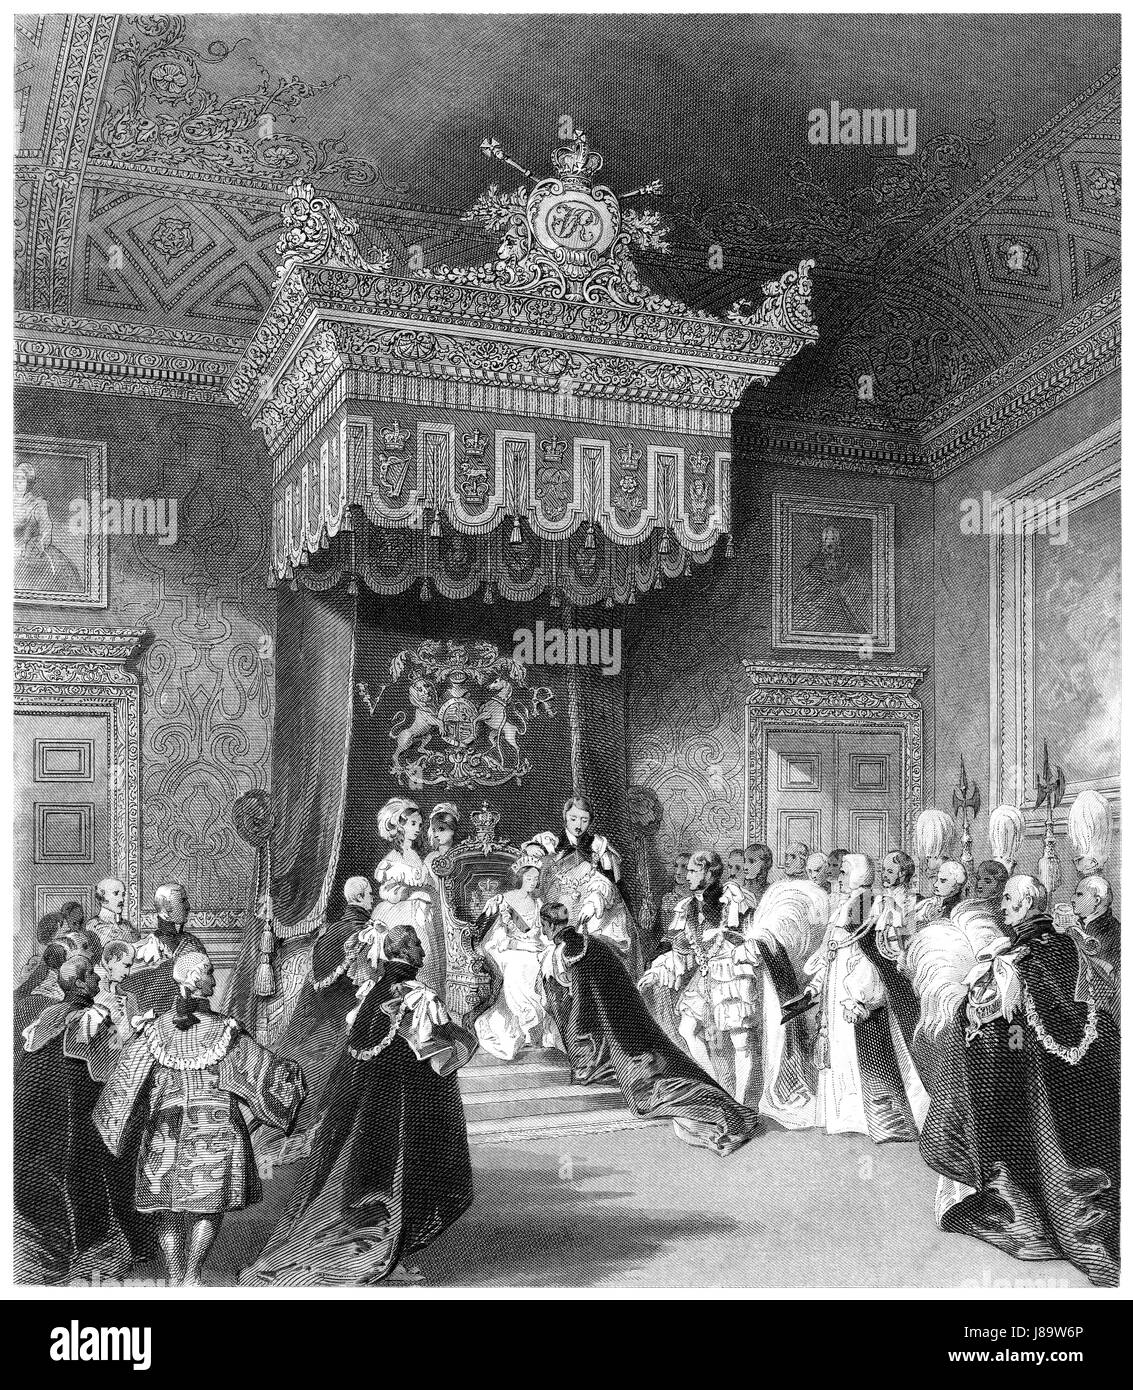 Victorian engraving of the investiture by Queen Victoria of a Knight of the Garter in the Throne Room at St. James's - Stock Image